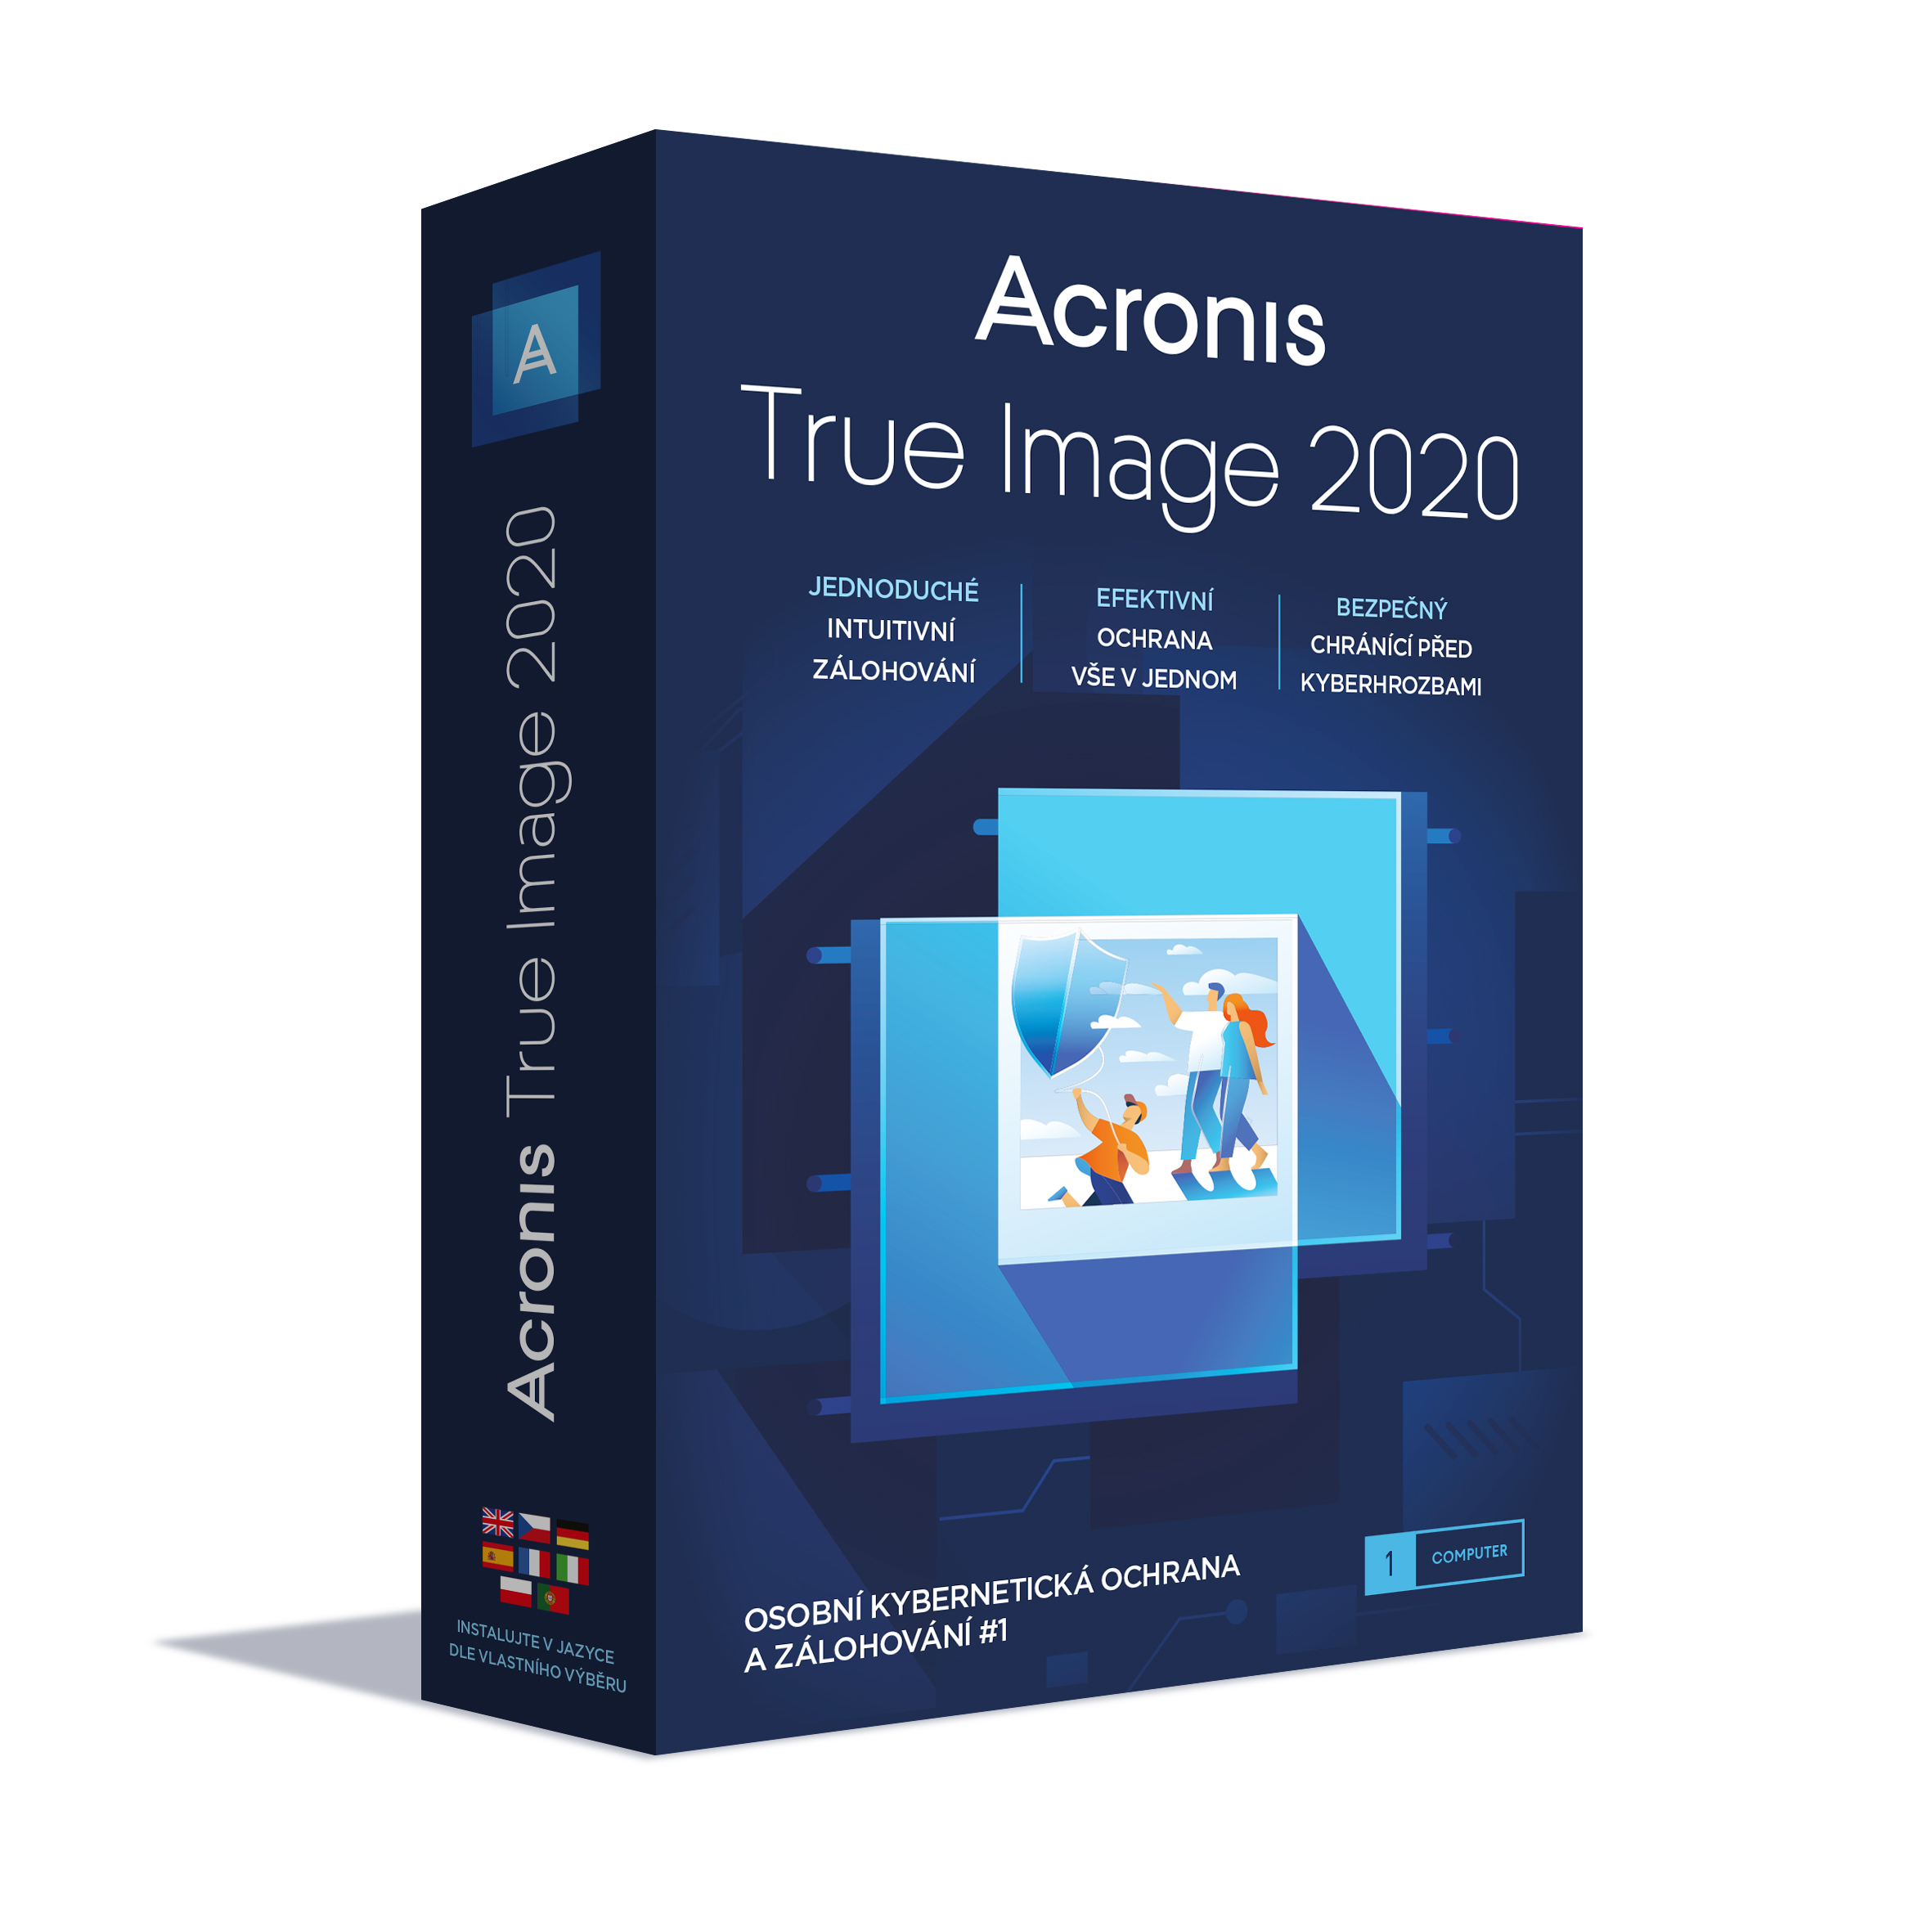 Acronis True Image 2020 - 1 Computer BOX